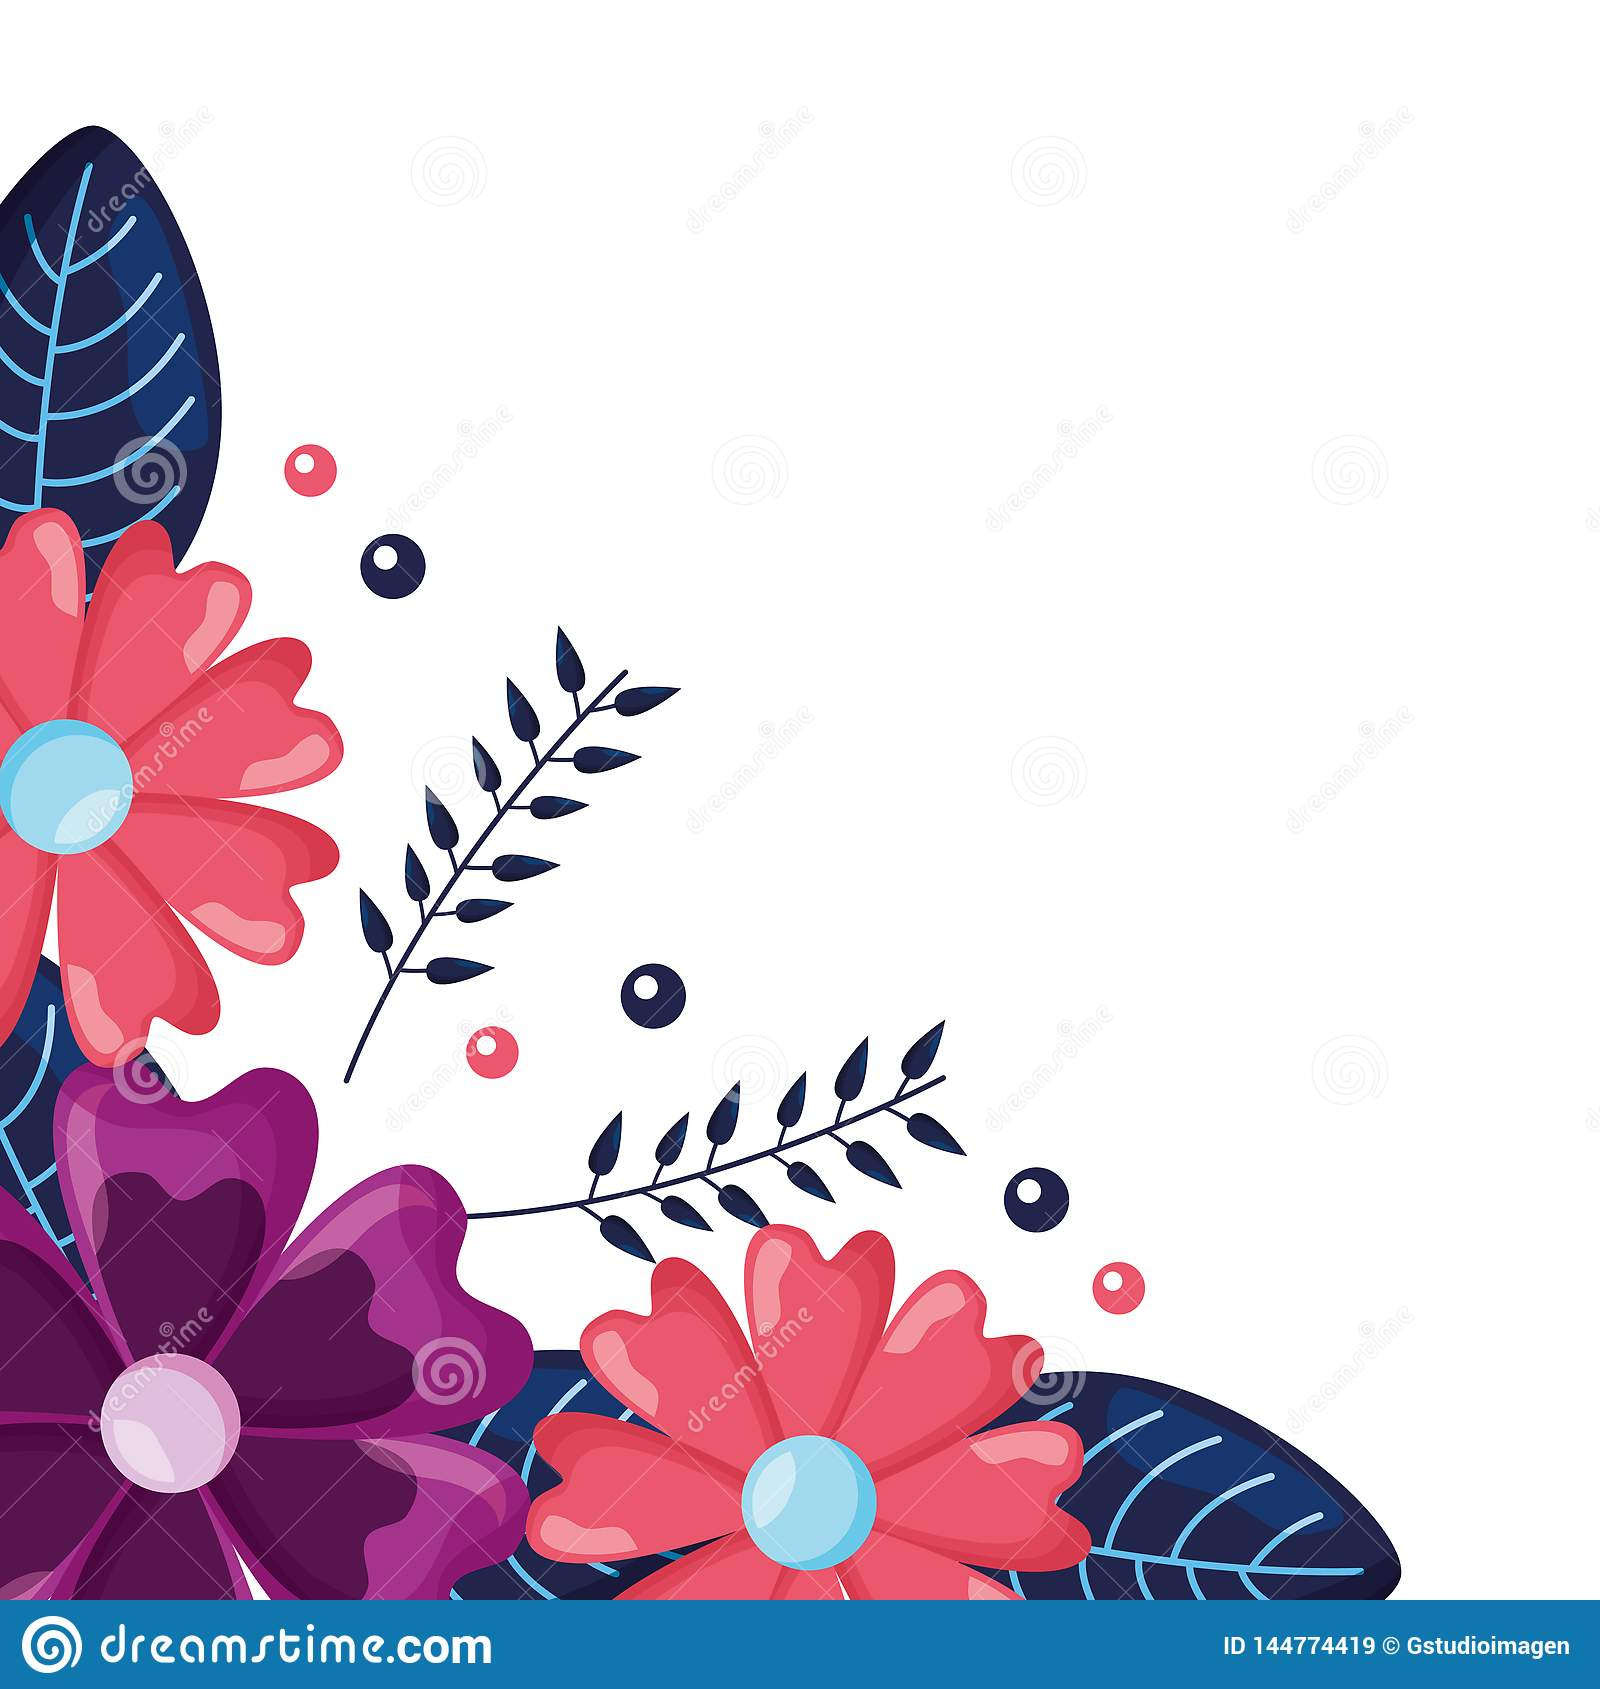 corner decoration flowers stock vector illustration of isolated 144774419 dreamstime com